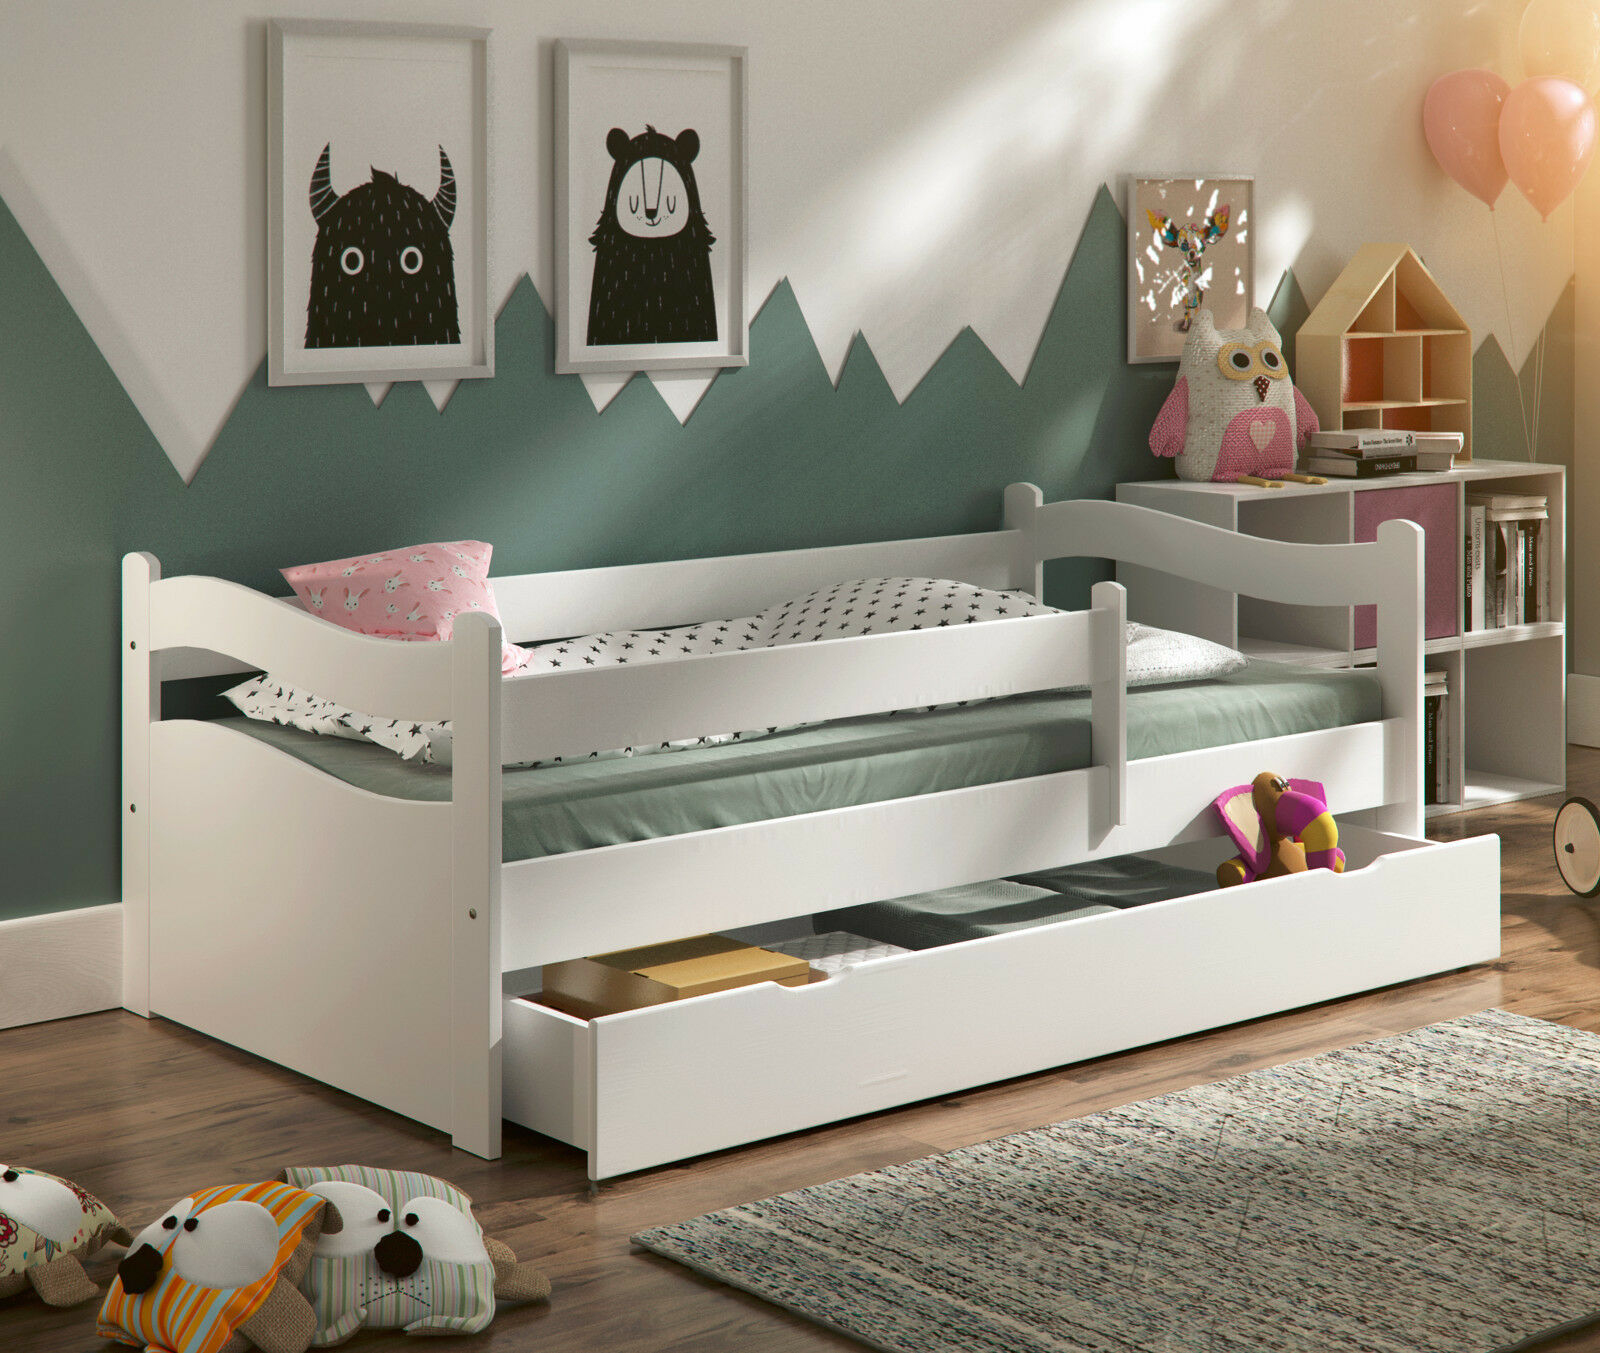 kinderbett abby neu massivholz matratze lattenrost schublade 160x80cm 4 farben eur 179 00. Black Bedroom Furniture Sets. Home Design Ideas